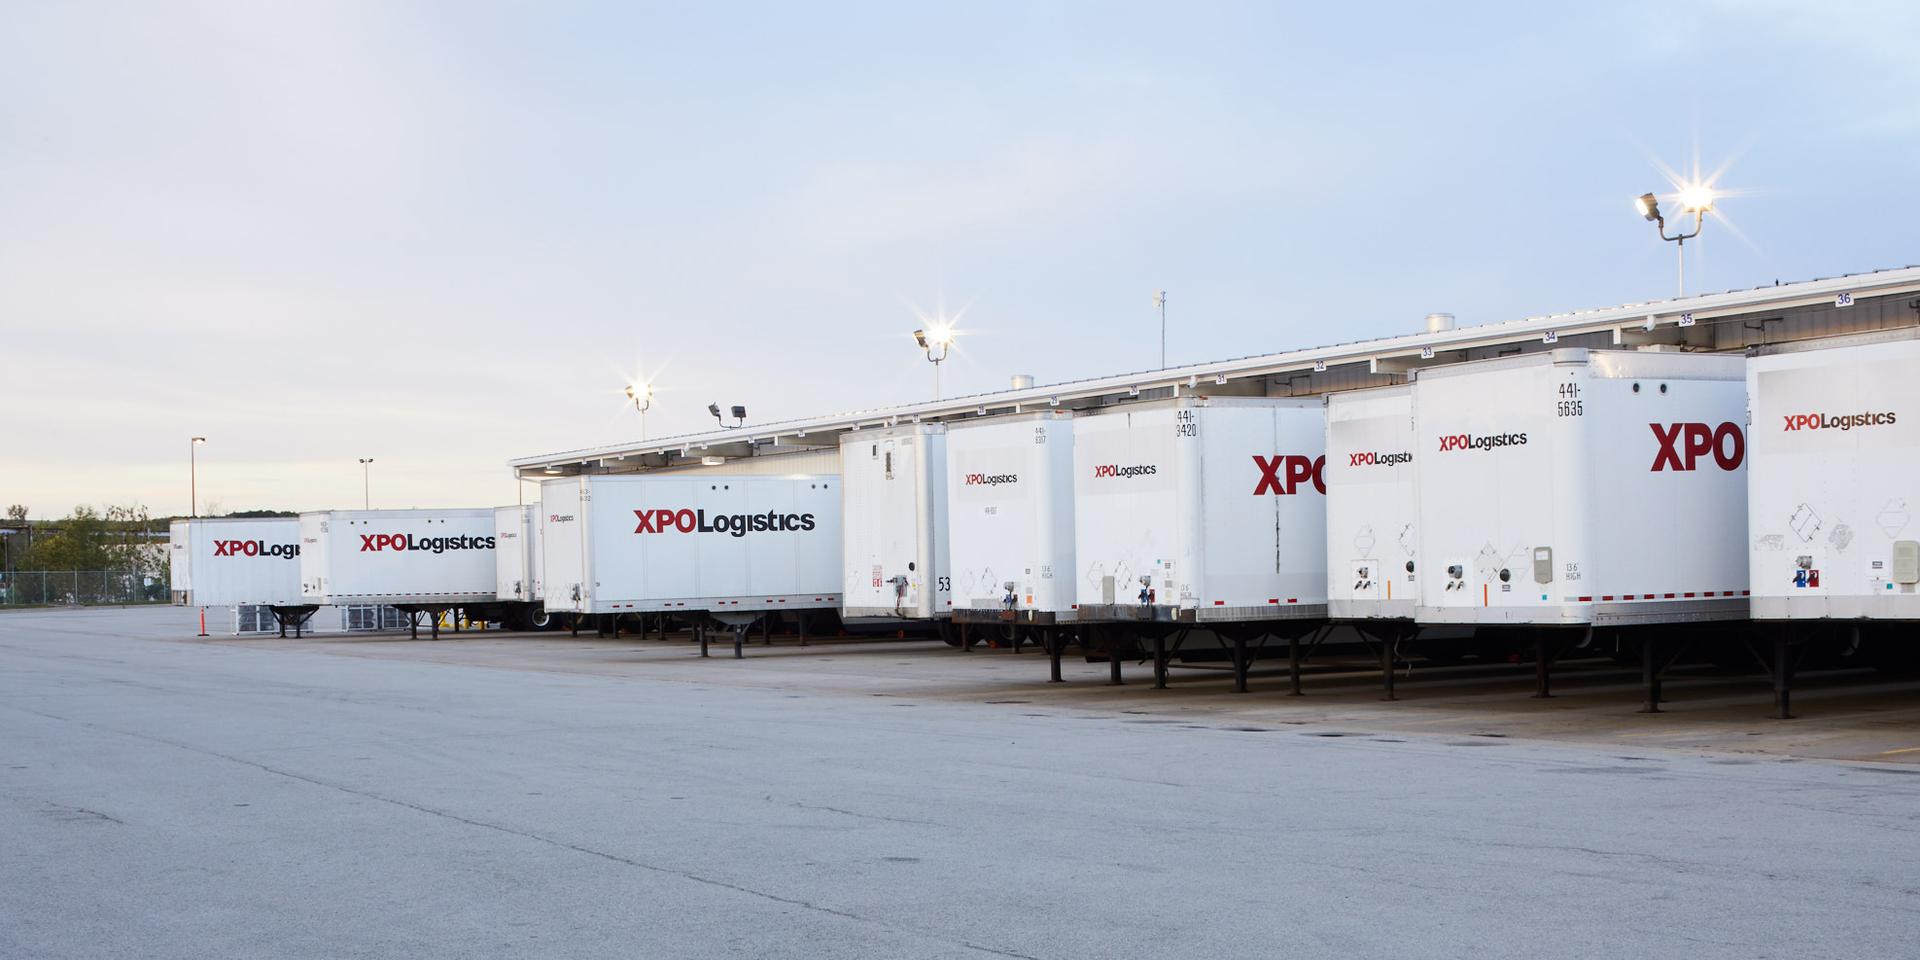 XPO trailers lined up